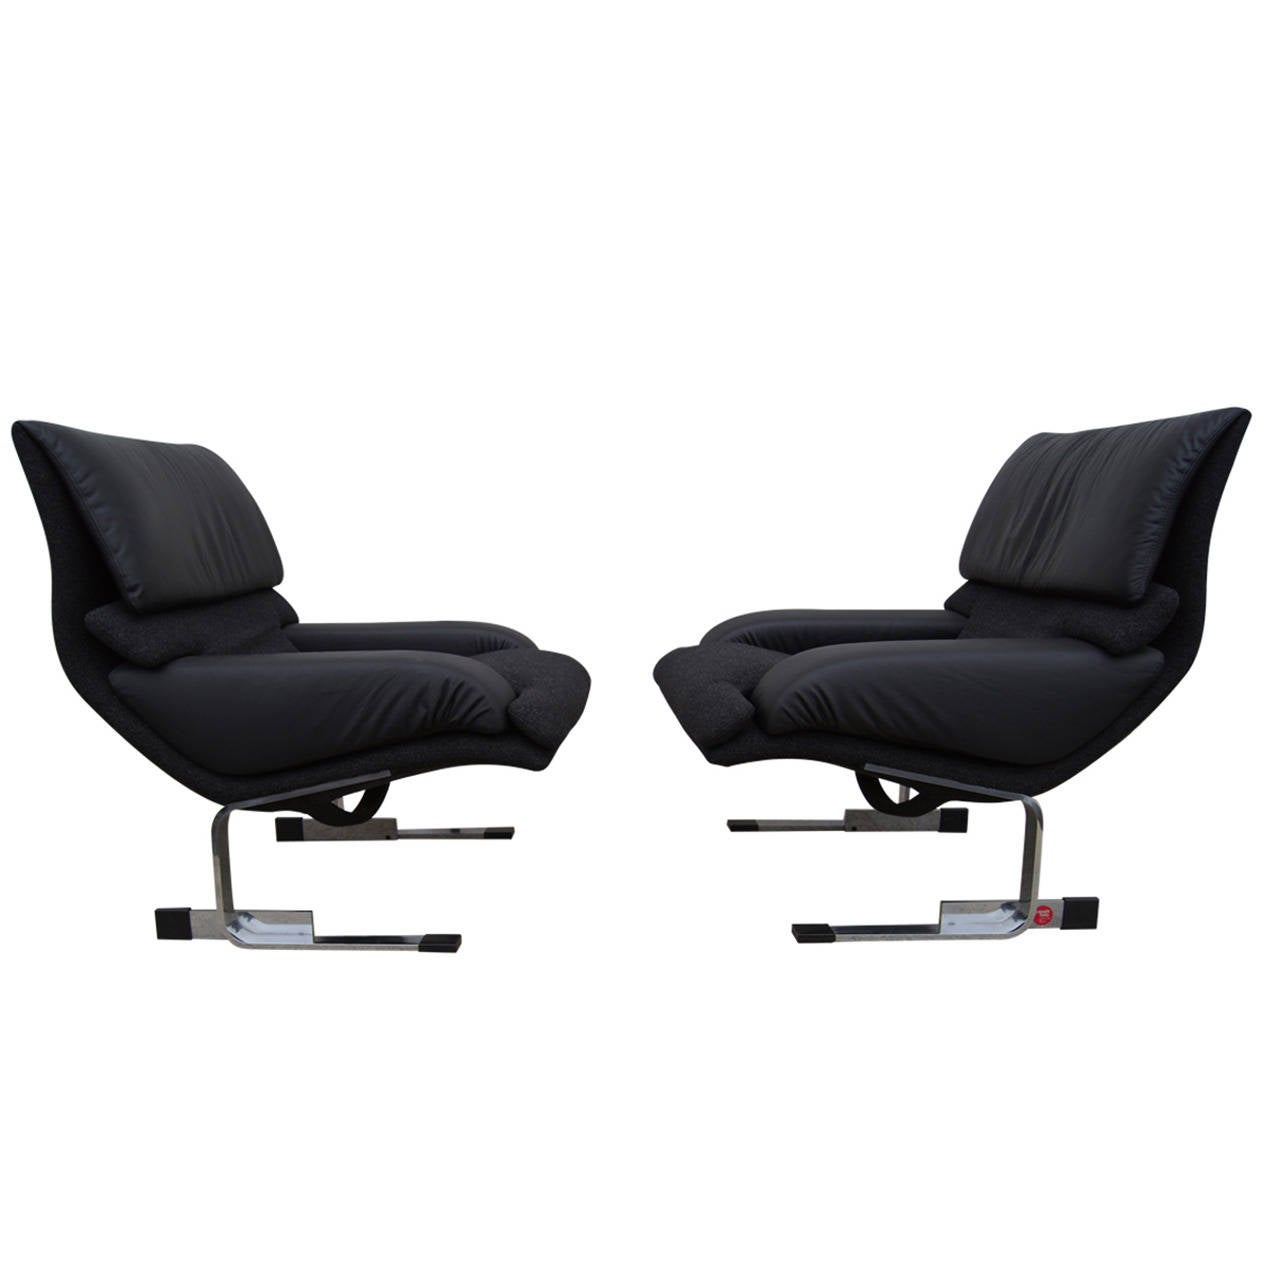 Pair of Onda Lounge Chairs by Giovanni Offredi for Saporiti Italia